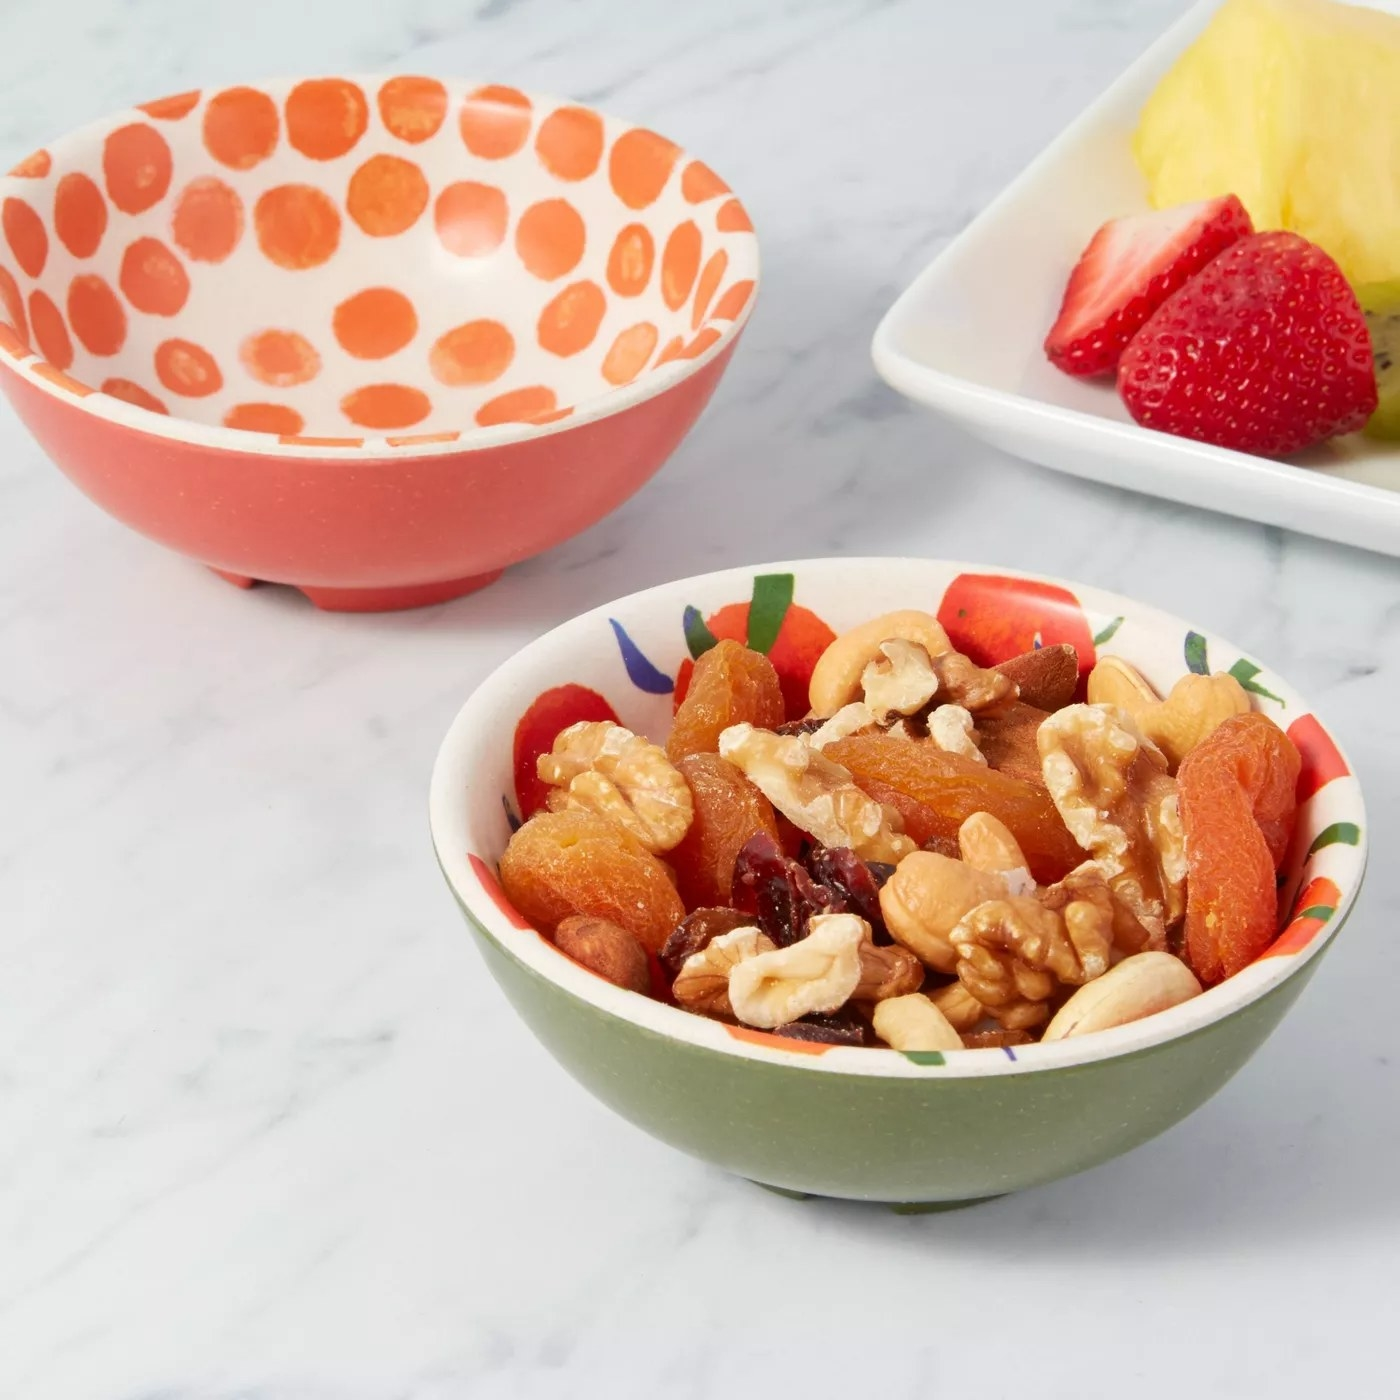 The citrus bowl is holding mixed fruits and nuts and the polka dot bowl is near a plate of fresh fruit